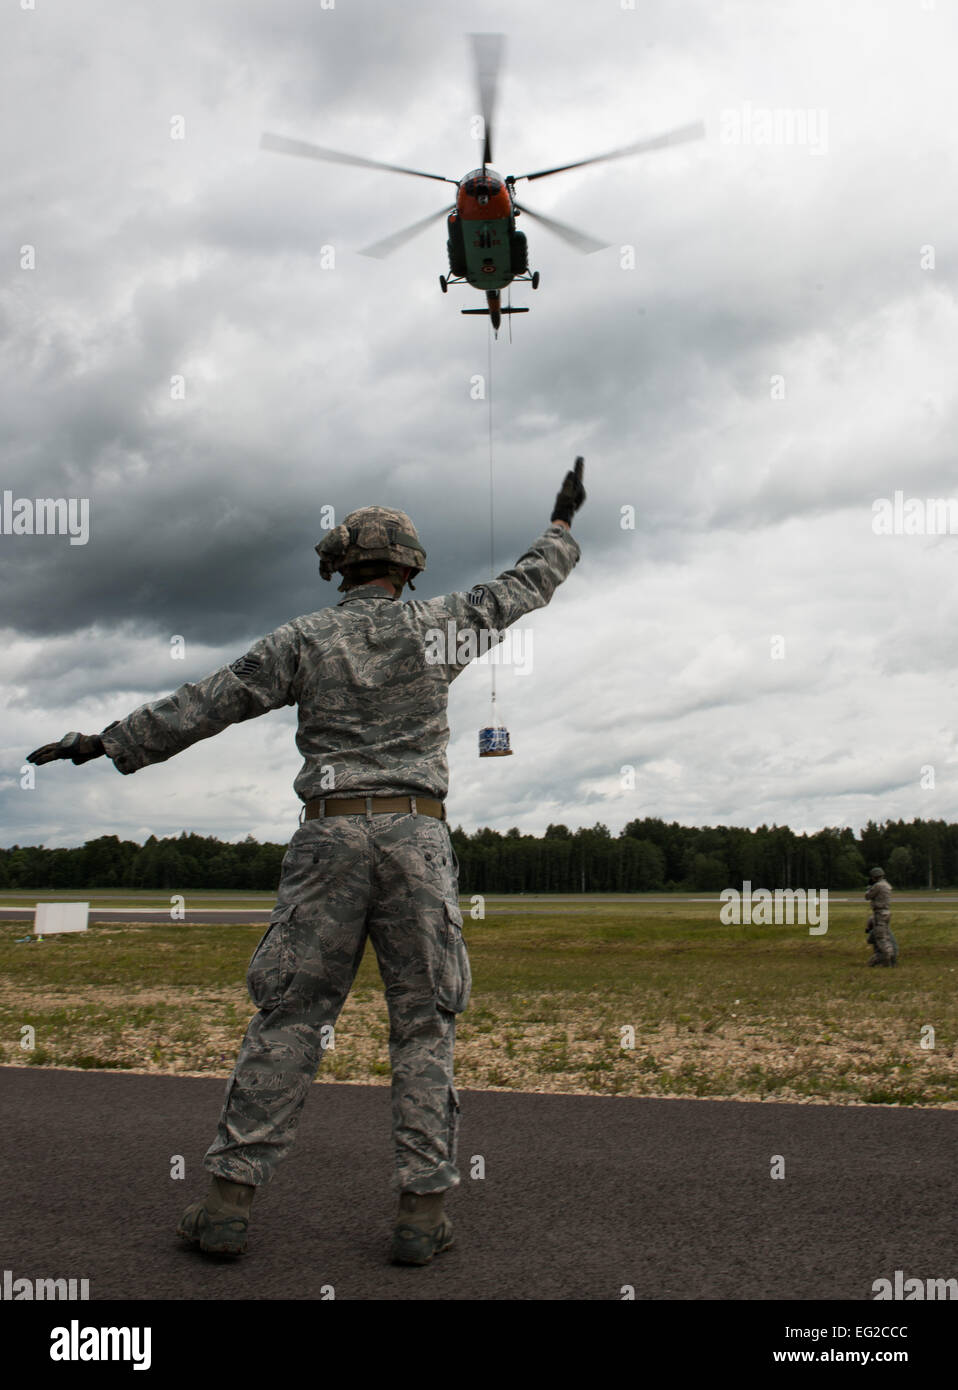 Staff Sgt. Timothy Kennedy marshals a Latvian Mi-8 helicopter during sling-load operations training at the Air Force - Stock Image